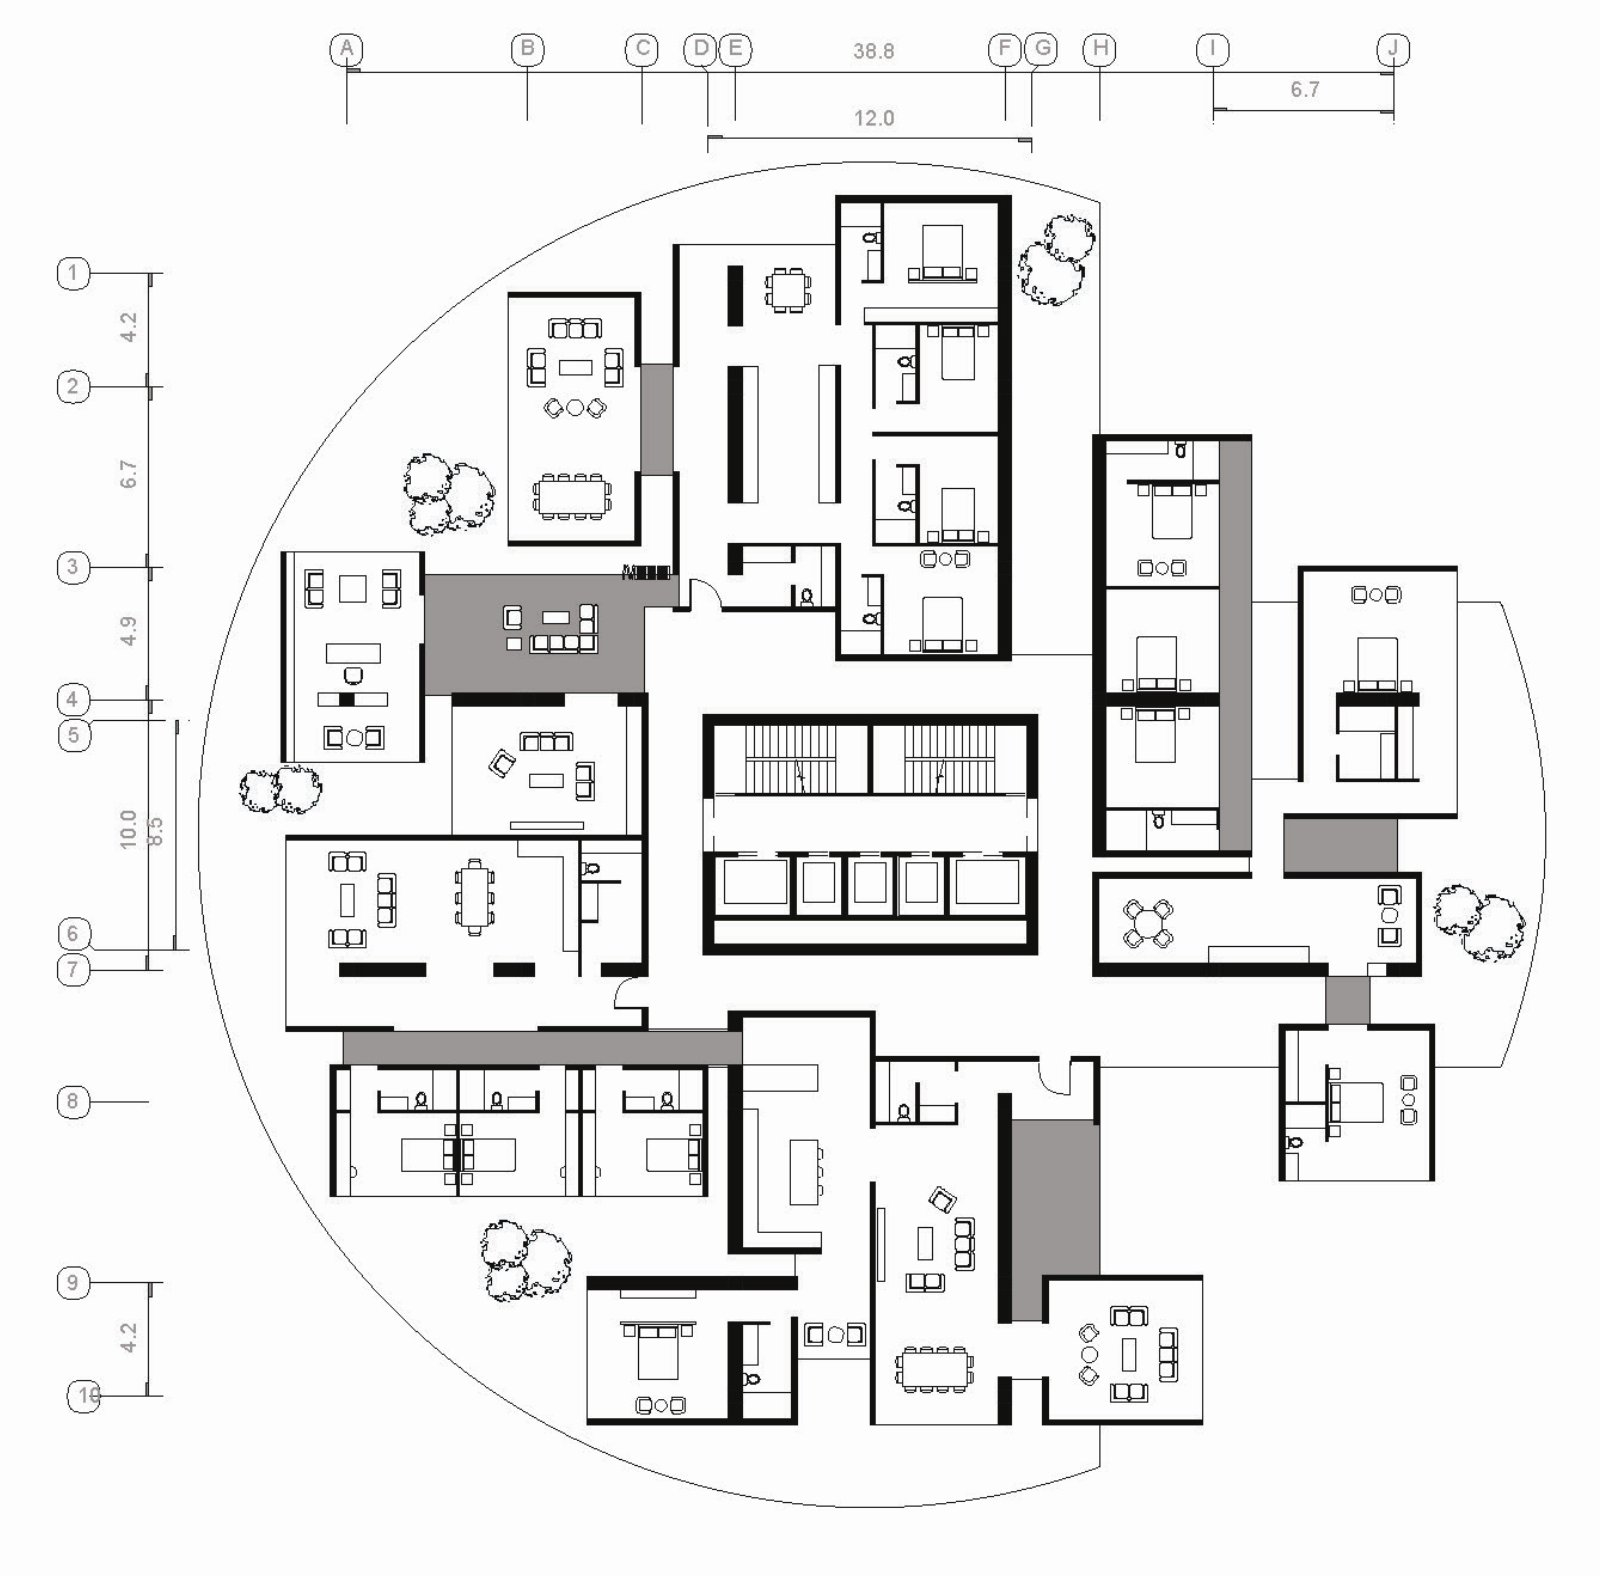 iran house floor plans html with Farmanieh Residential Tower Zaad Studio on Ann Curry Doing Now moreover 2013 01 01 archive moreover World Map 500 Bc furthermore Modern House Facade Design together with Index.